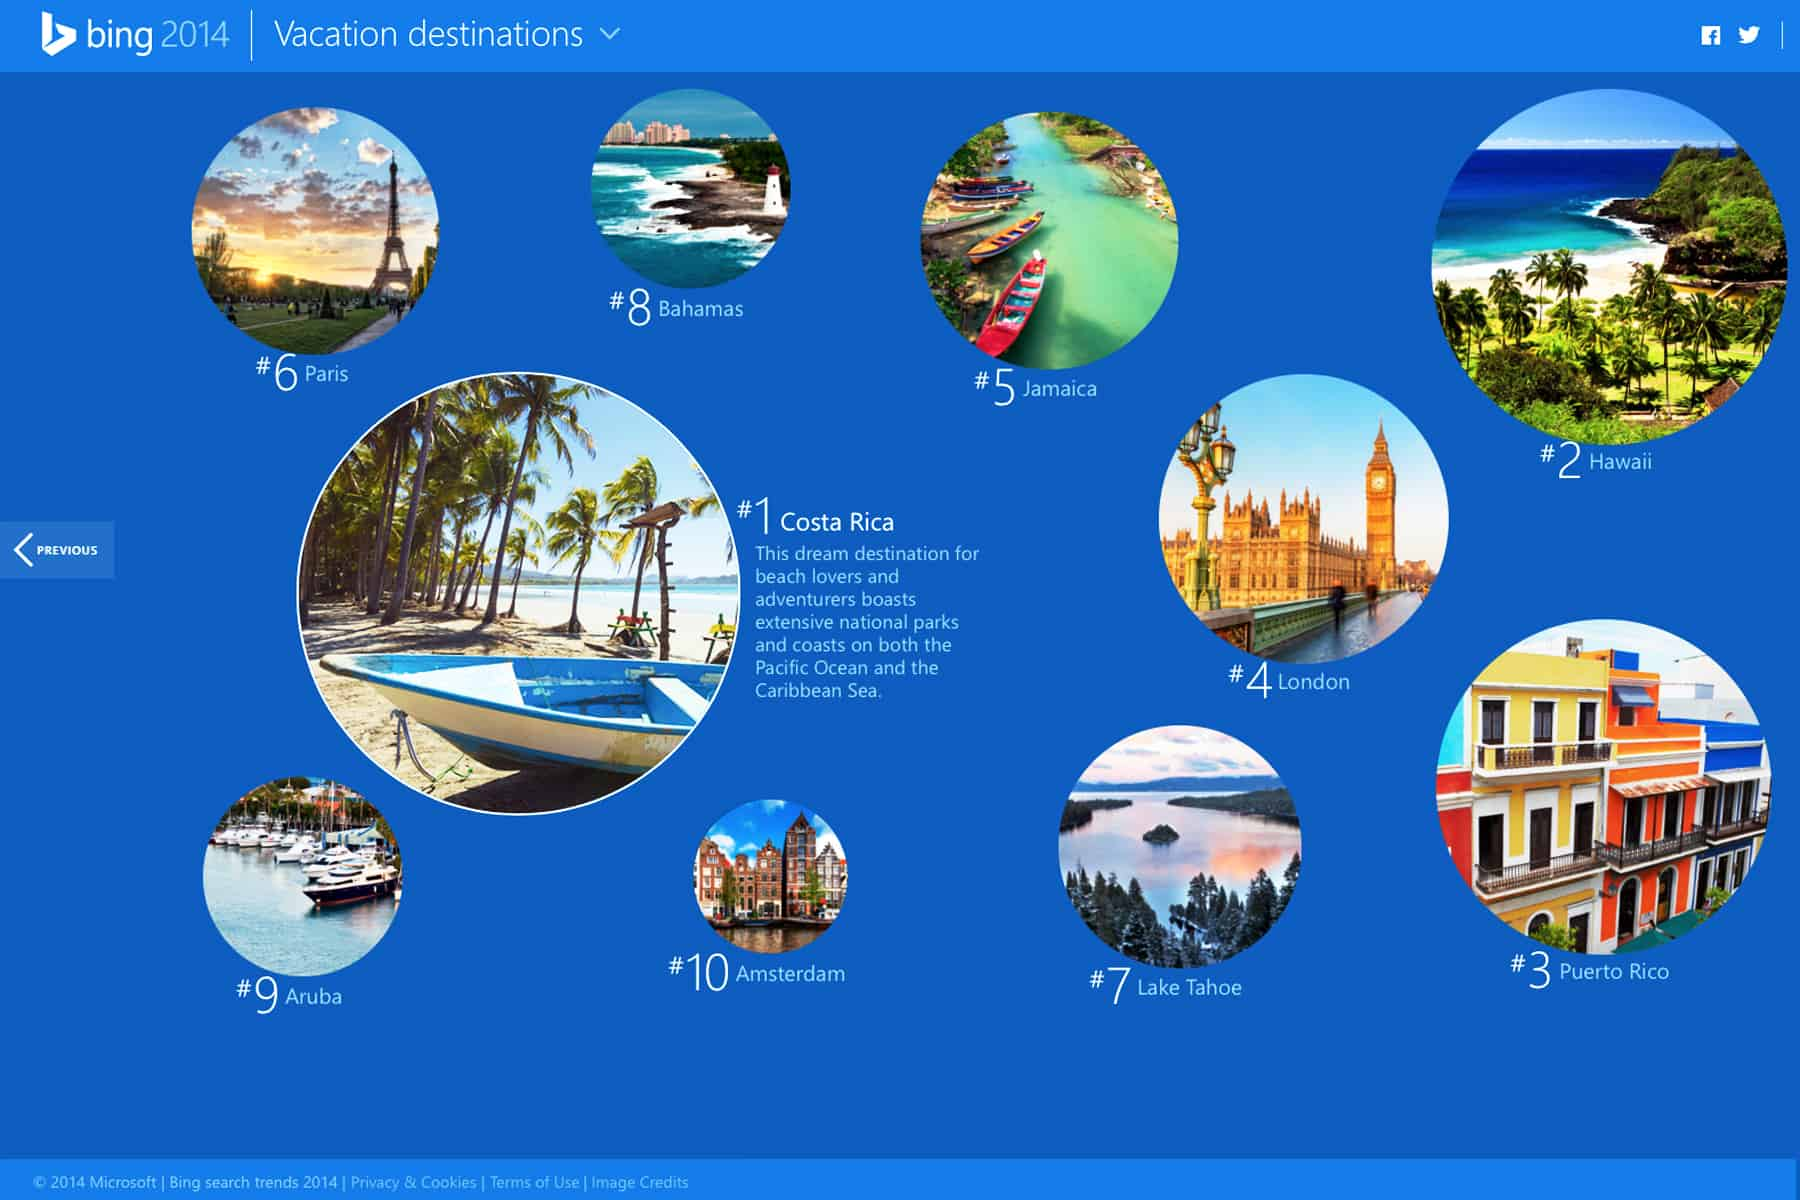 Bing Most Popular Vacation Destinations 2014